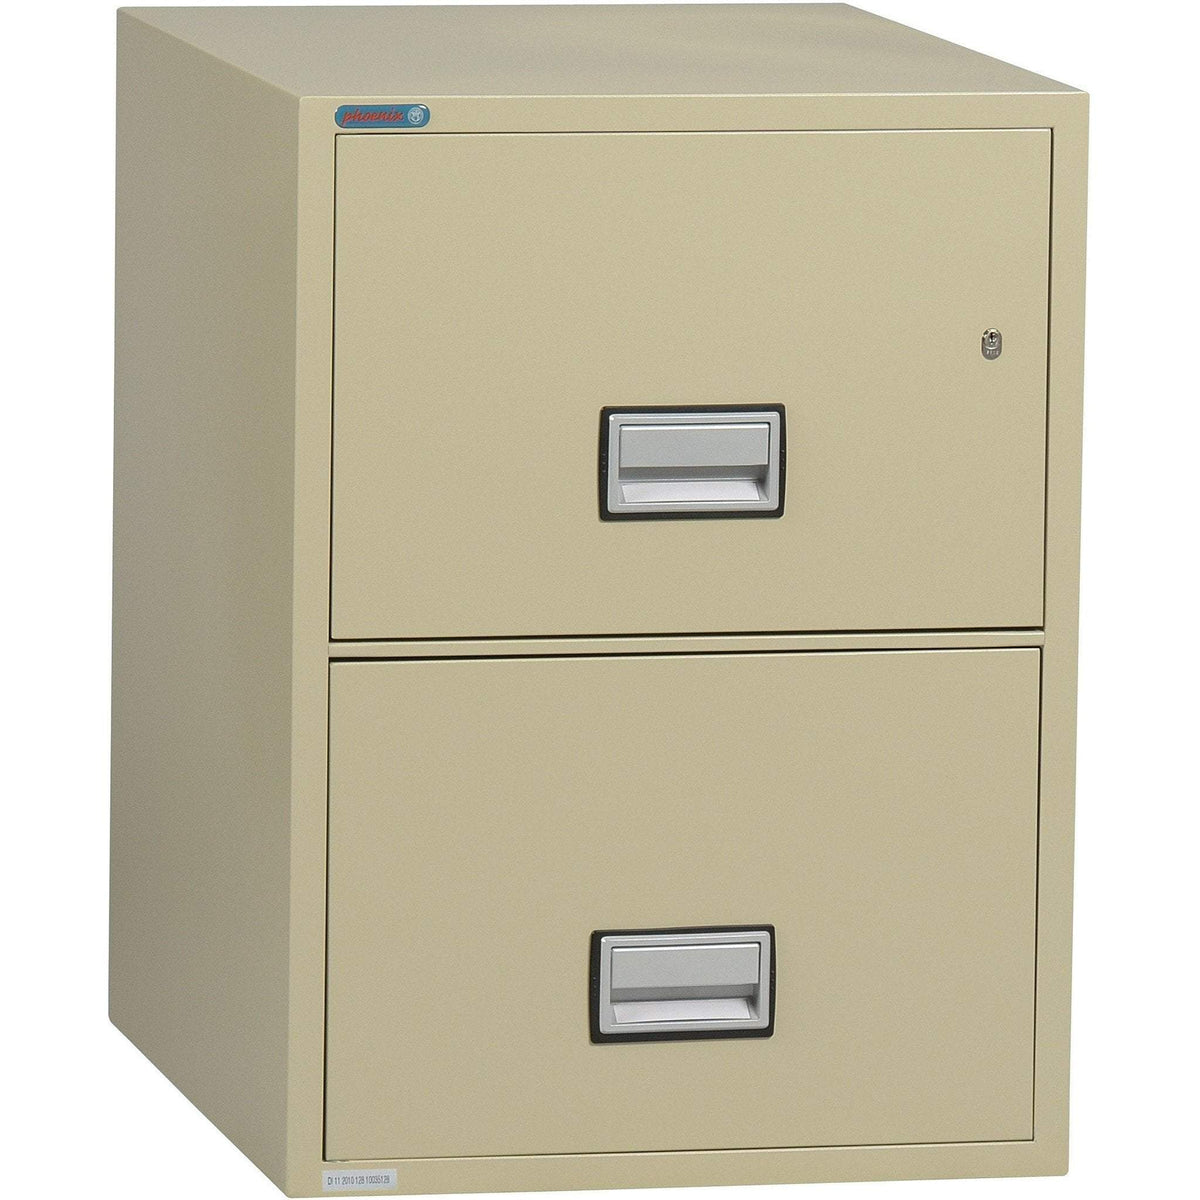 Phoenix LGL2W25 Vertical 25 inch 2-Drawer Legal Fireproof File Cabinet Armadillo Safe and Vault